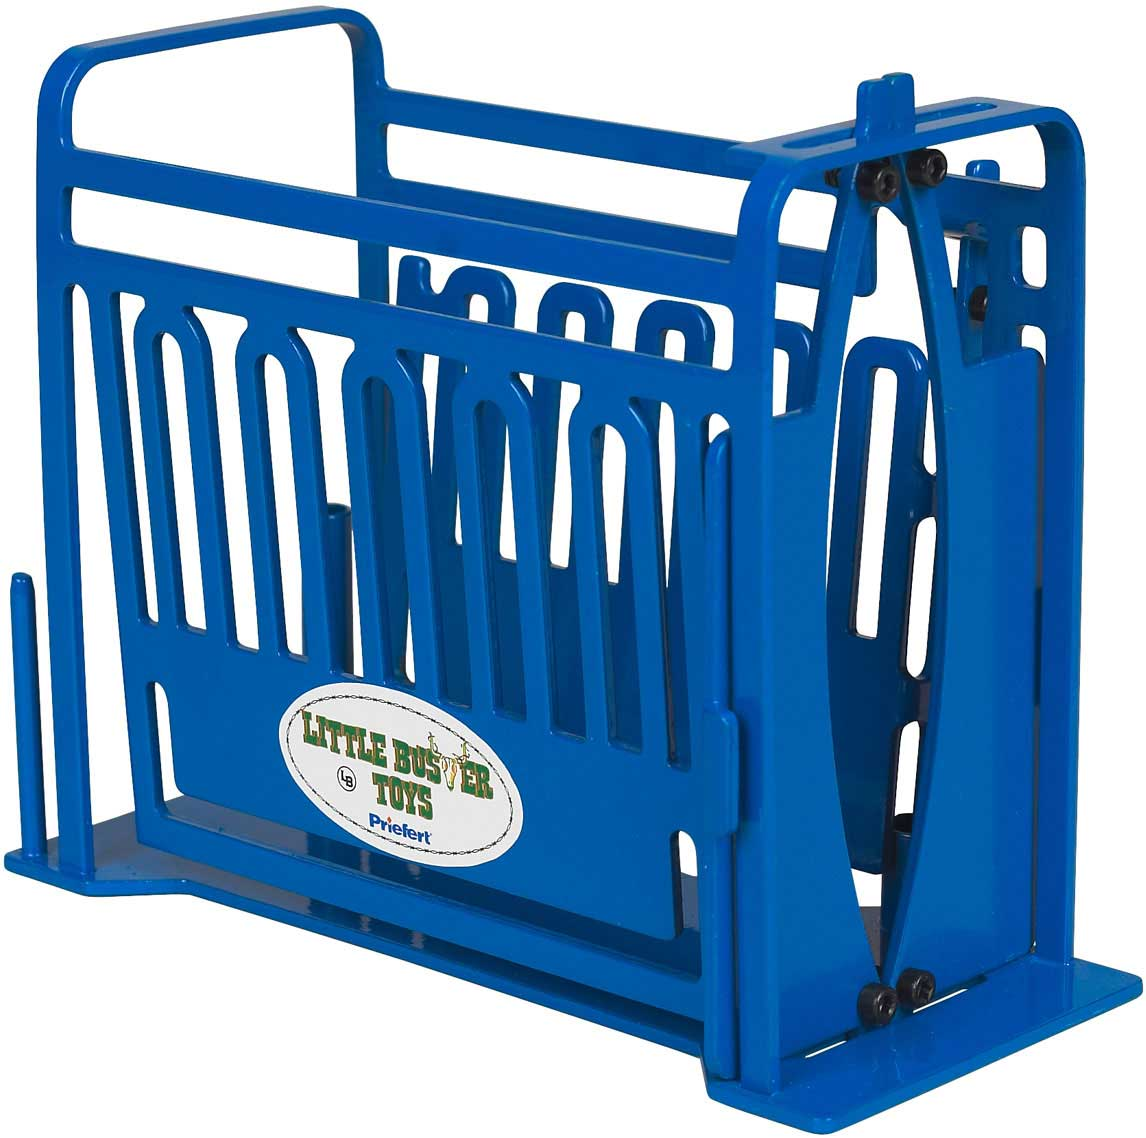 Toy Cattle Chute : Little buster priefert toy squeeze chute